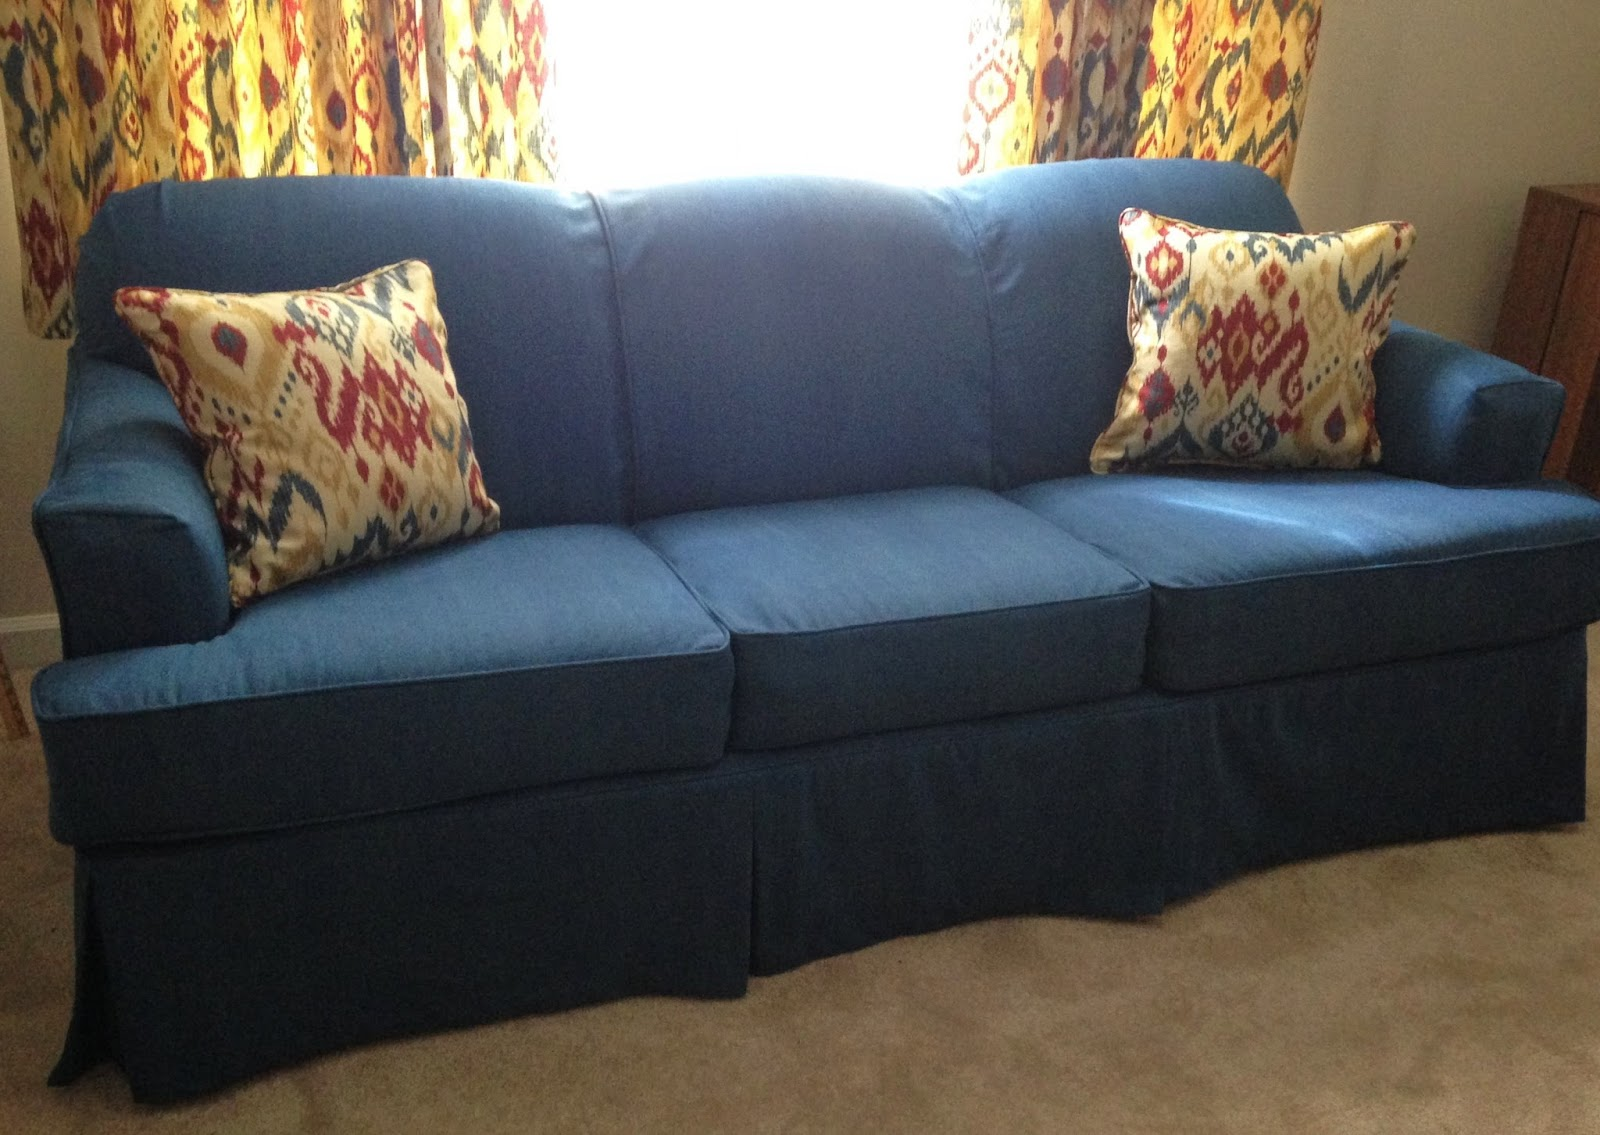 Slipcovers For Sofa Cushions Only Chesterfield Style And Chair Pam Morris Sews: Denim On A Sleeper